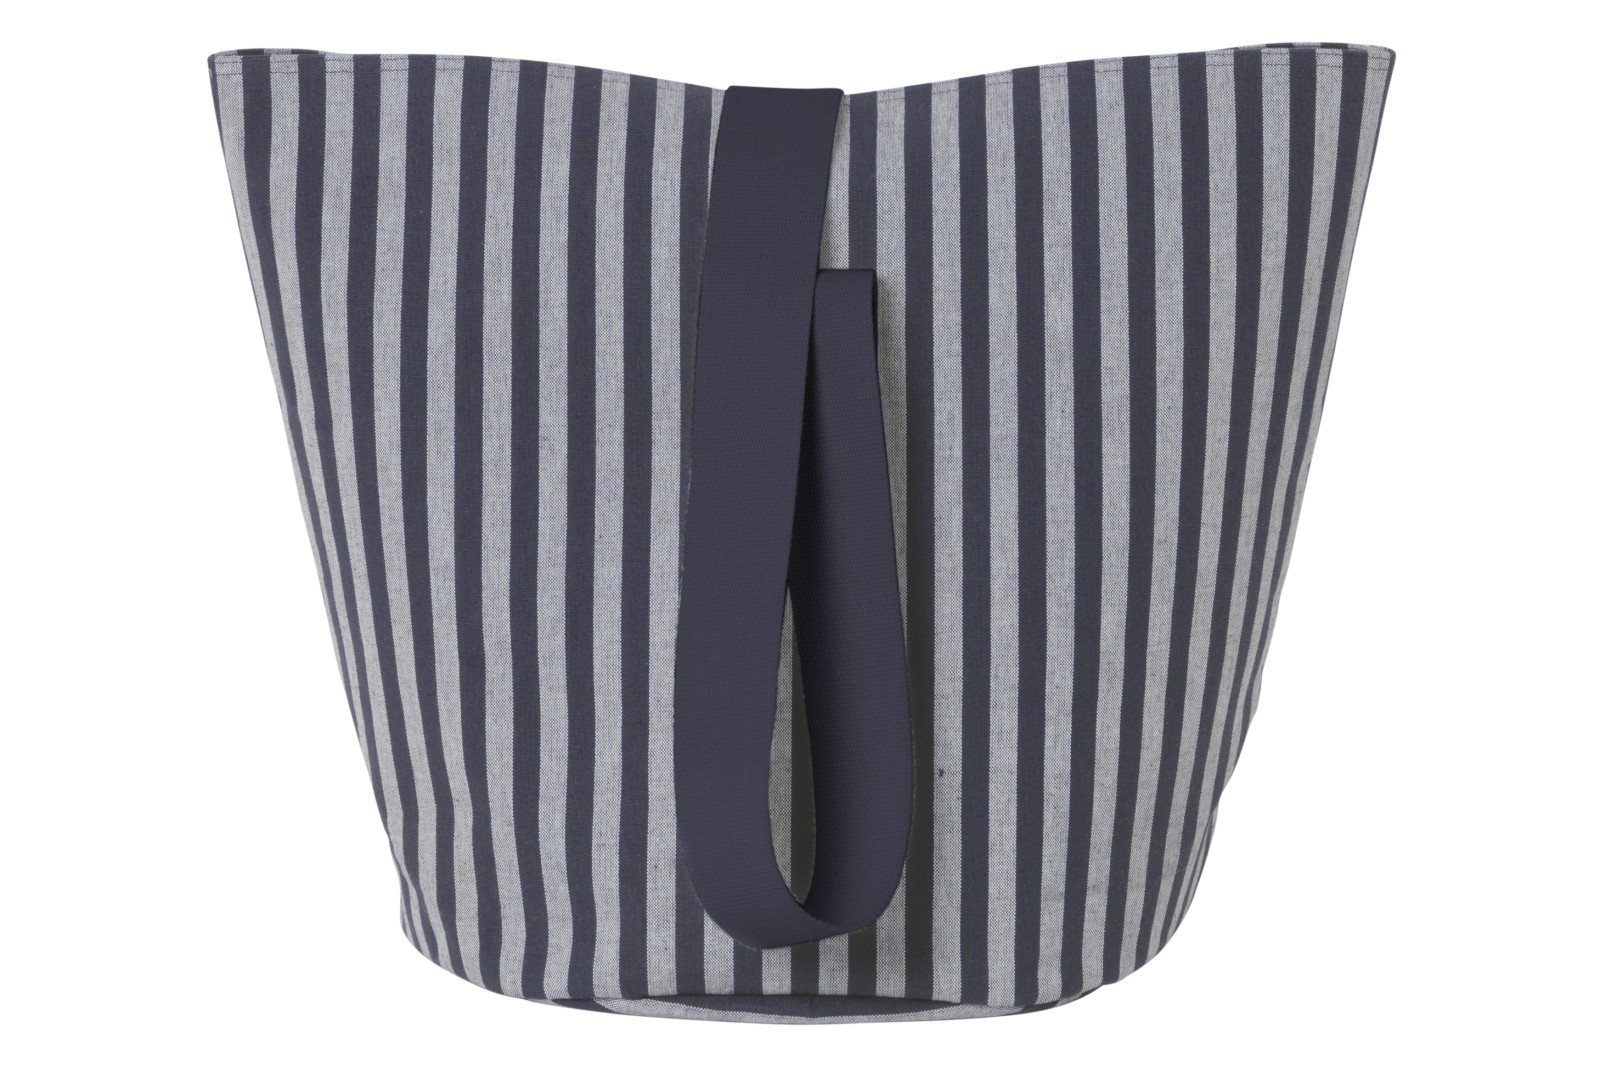 Chambray Basket - Set of 4 Striped Pattern, Medium